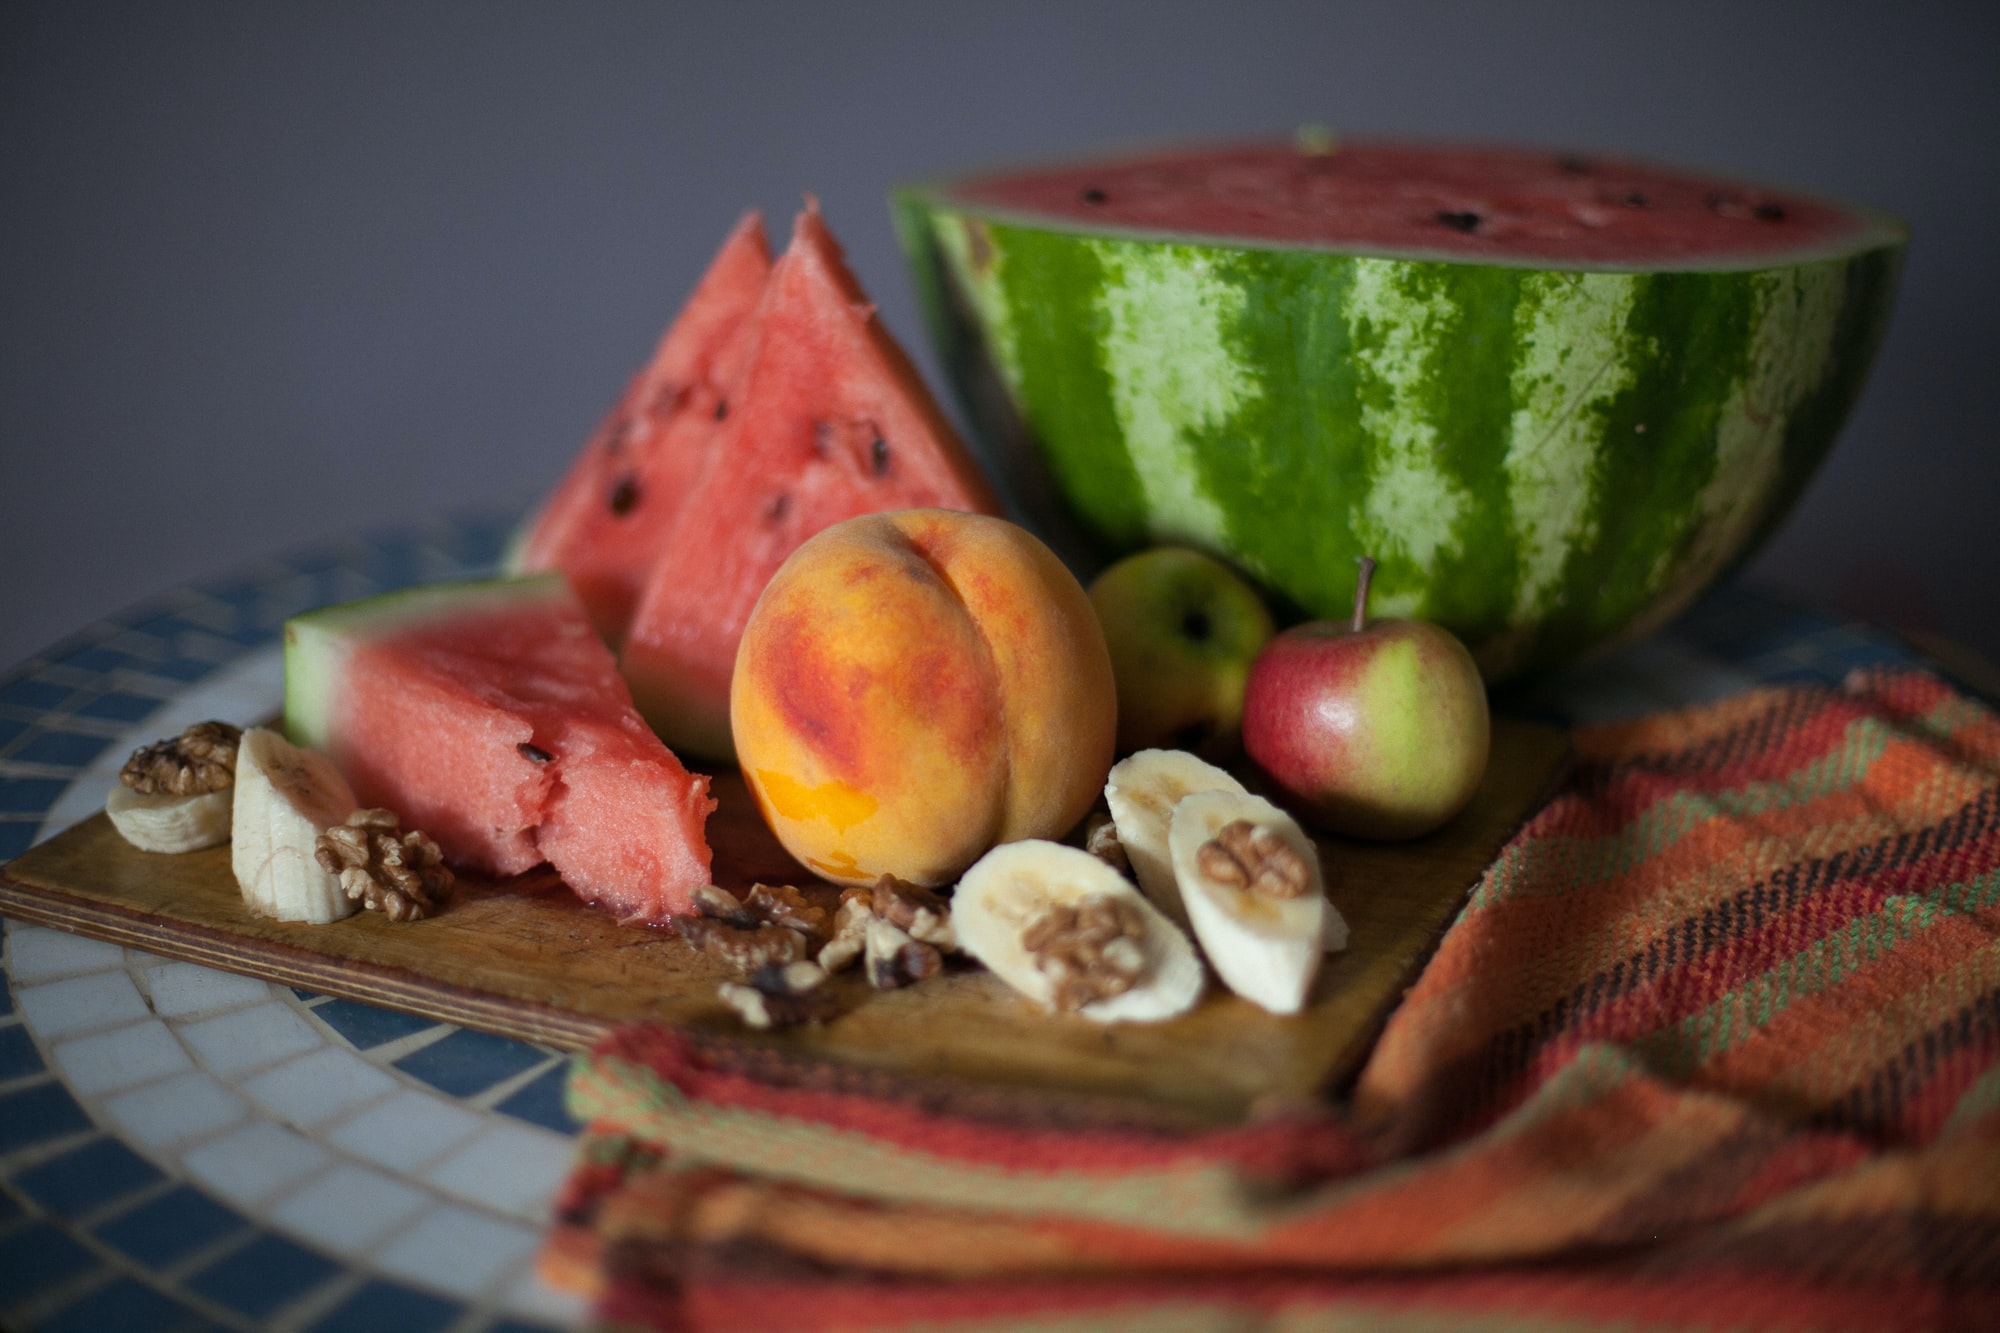 sliced watermelons on top of chopping board